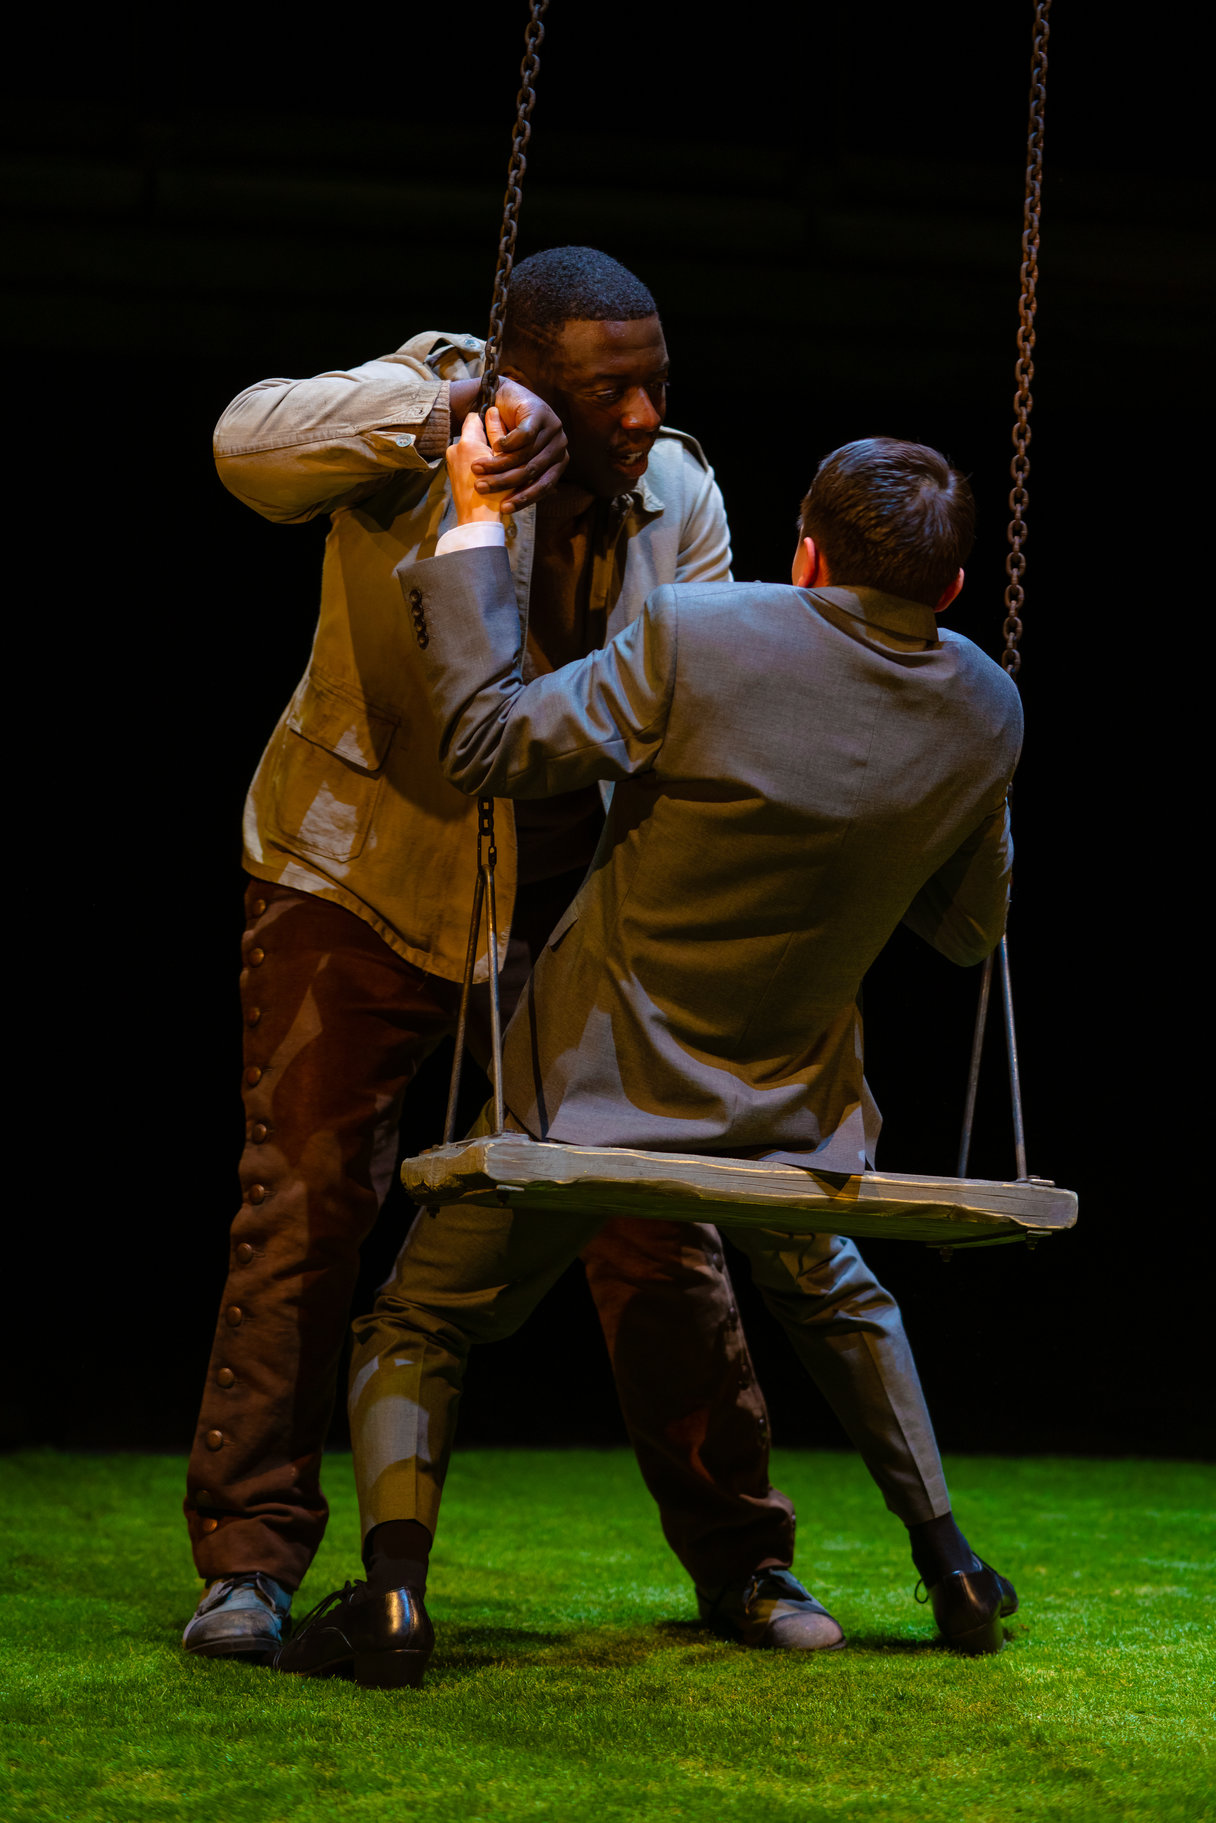 Orlando confronts Oliver on a swing.